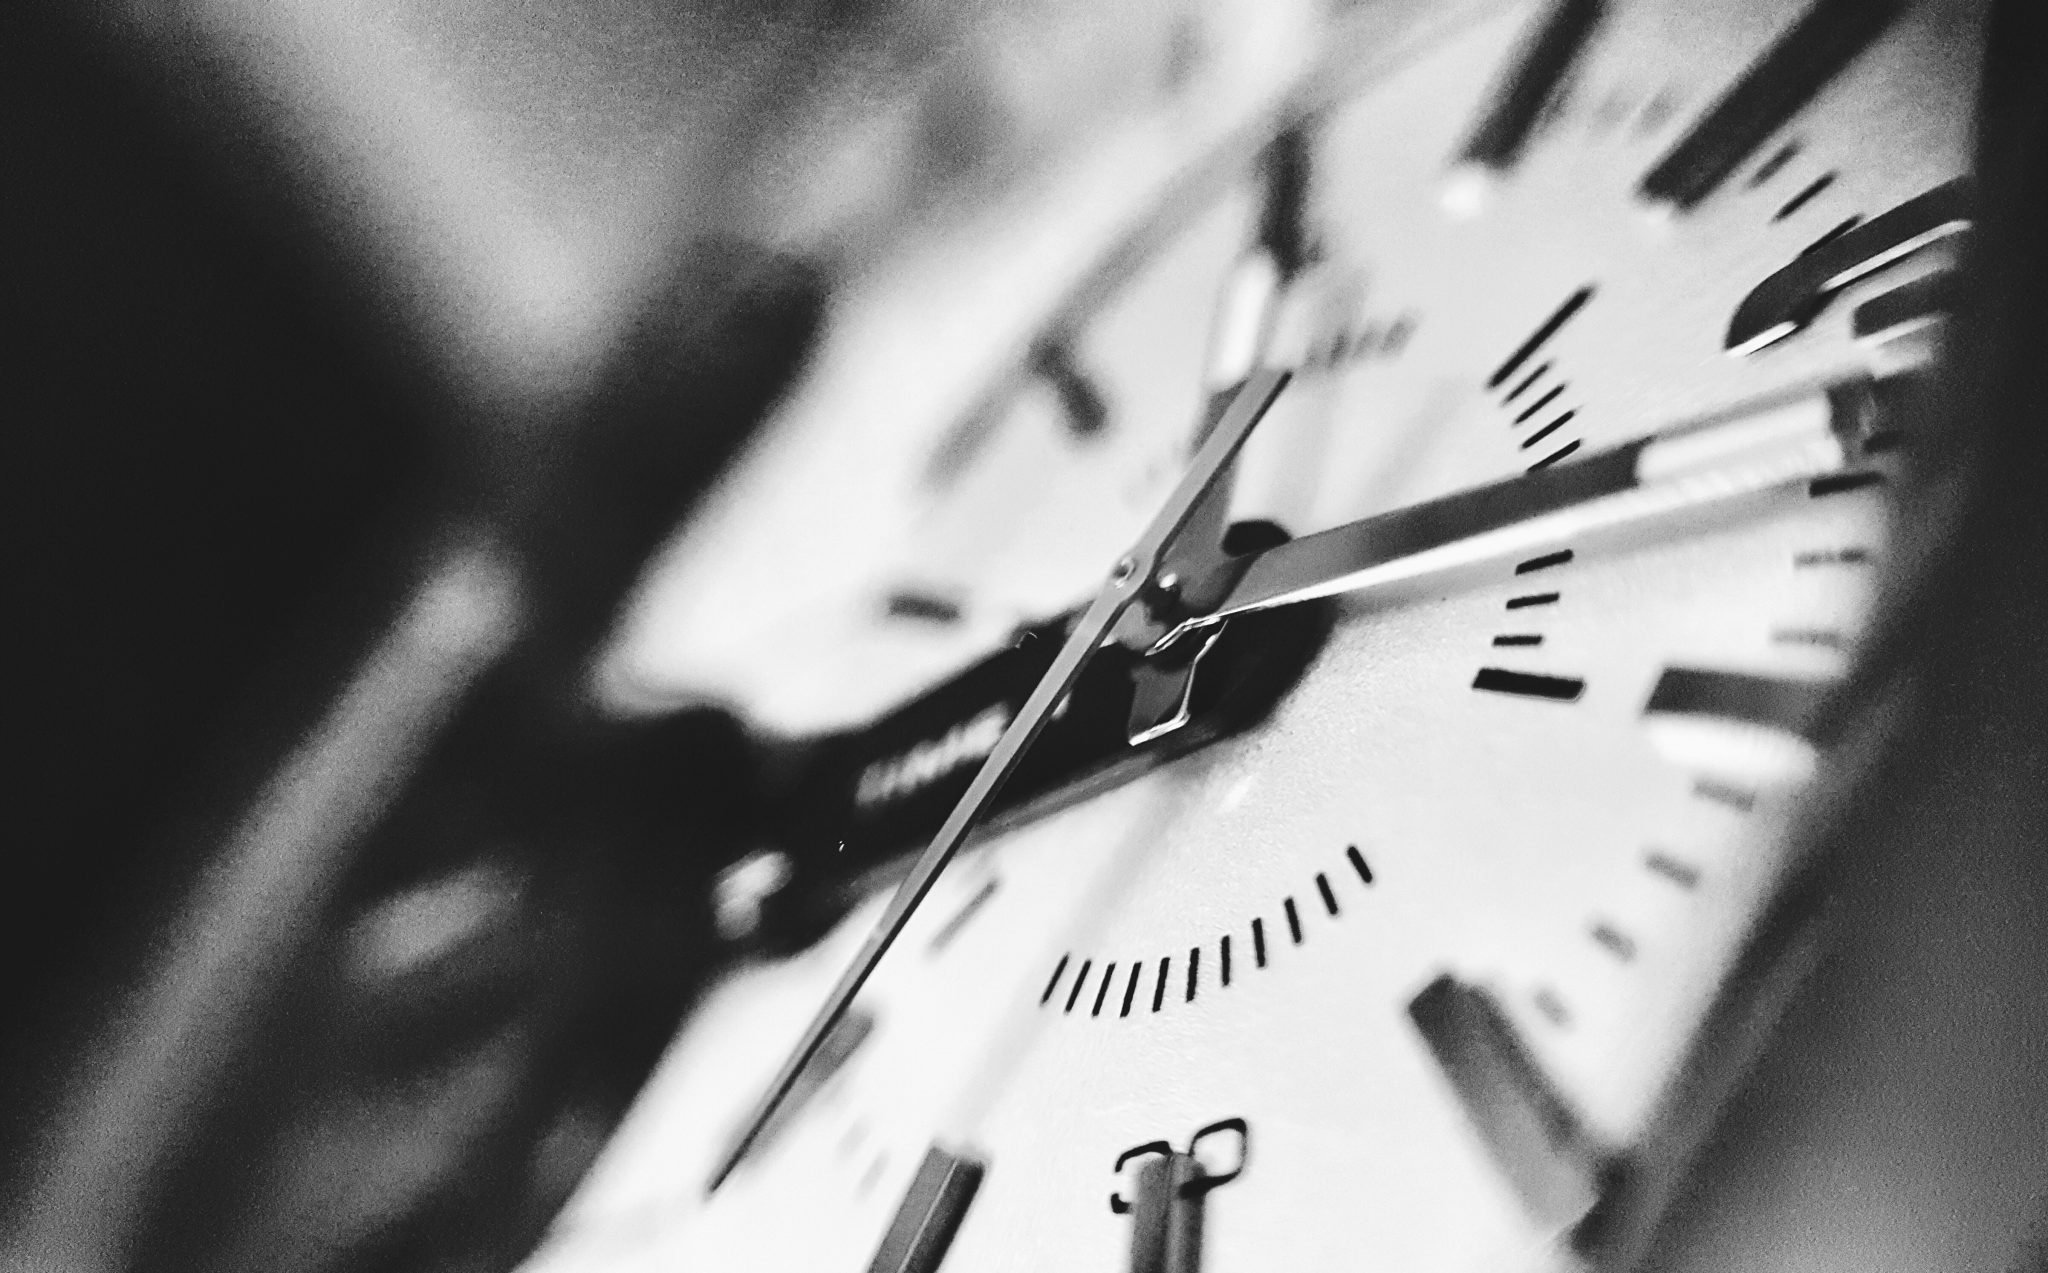 When is the right time to take a step and make a change in your life?